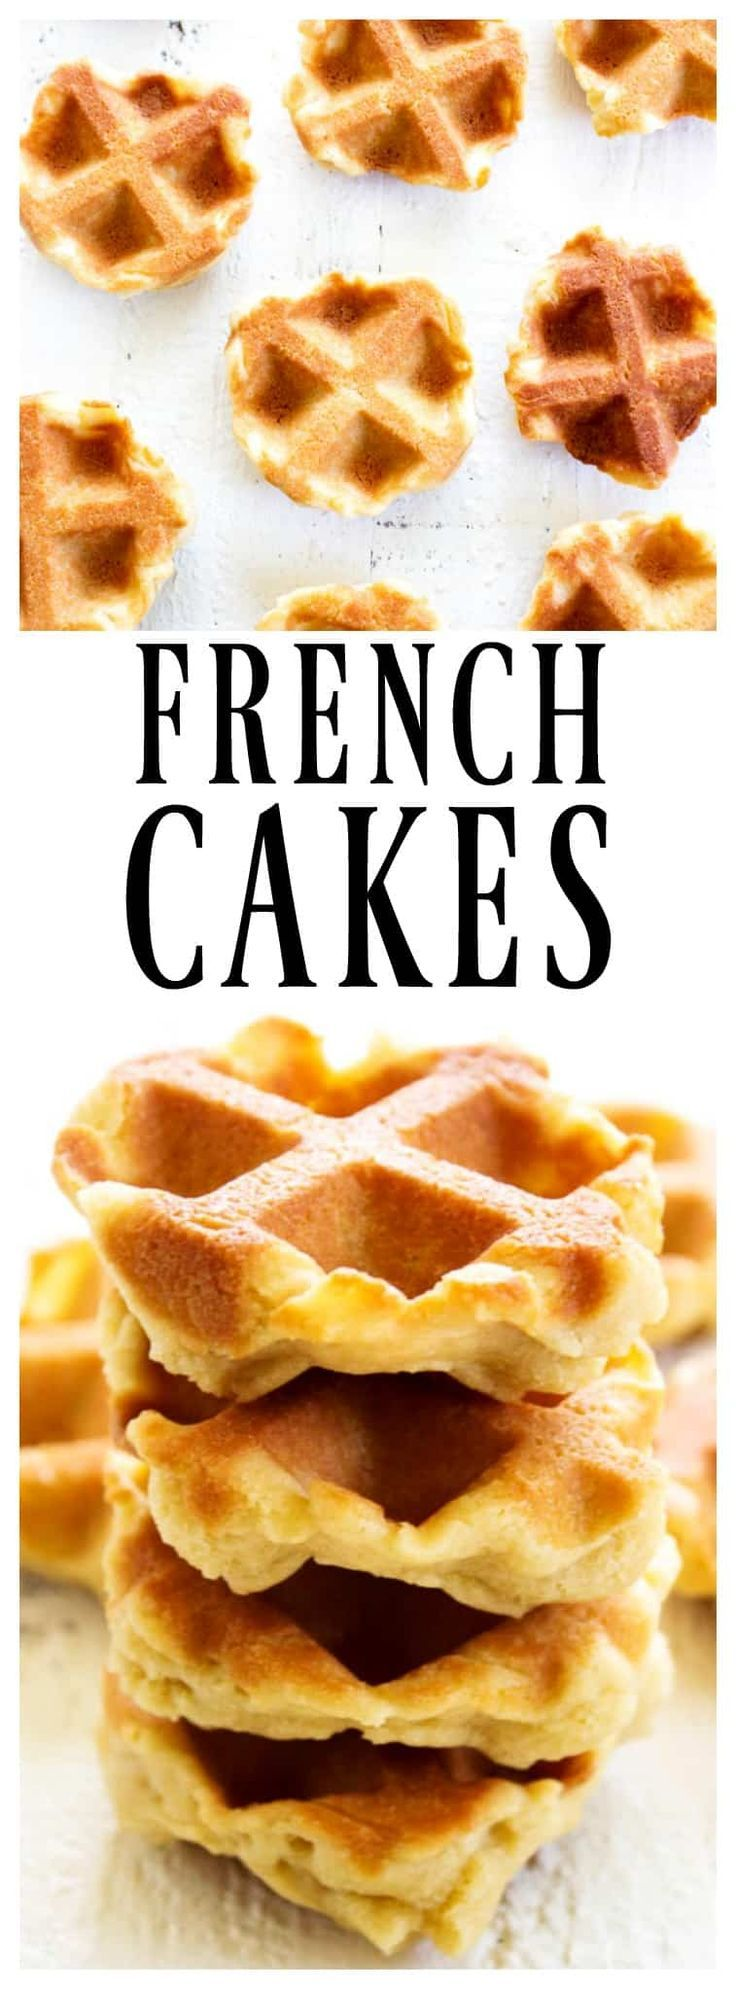 A Christmas tradition in our home, these FRENCH CAKES aka WAFFLE COOKIES are so easy and delicious. Made in the waffle iron and devoured by the dozen.